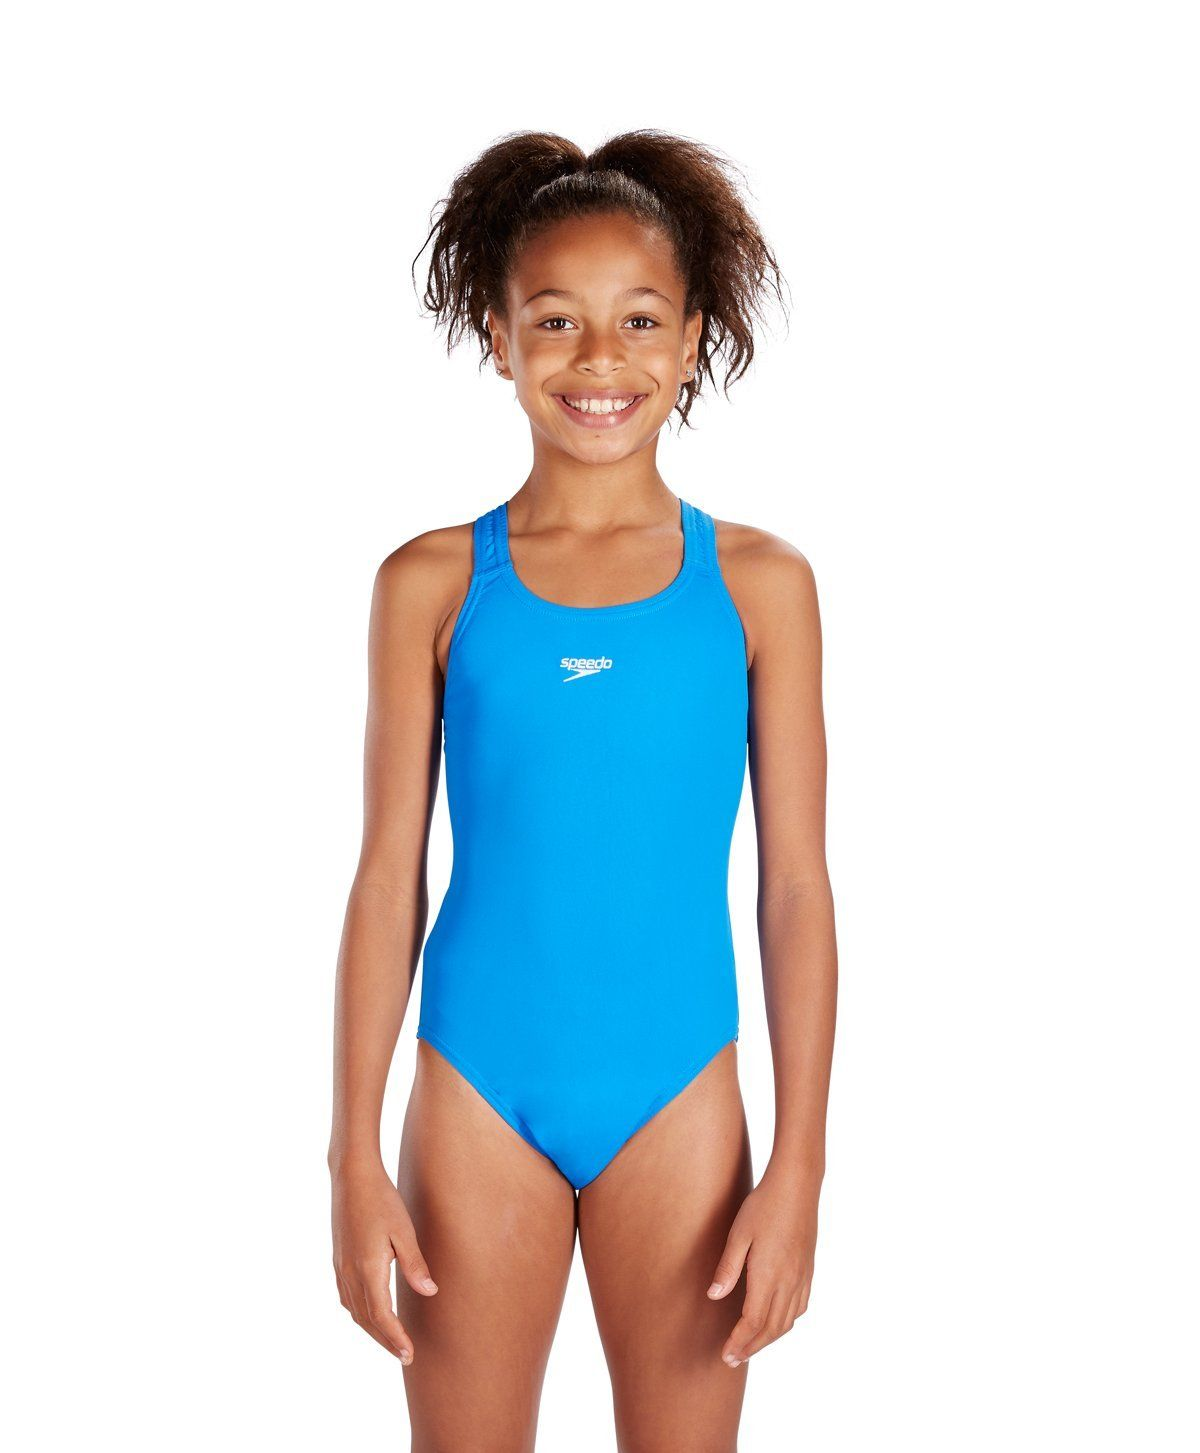 d6f44fcd93d Speedo Girls Endurance Plus Medalist Swimsuit in Black or Red: Amazon.ca:  Sports